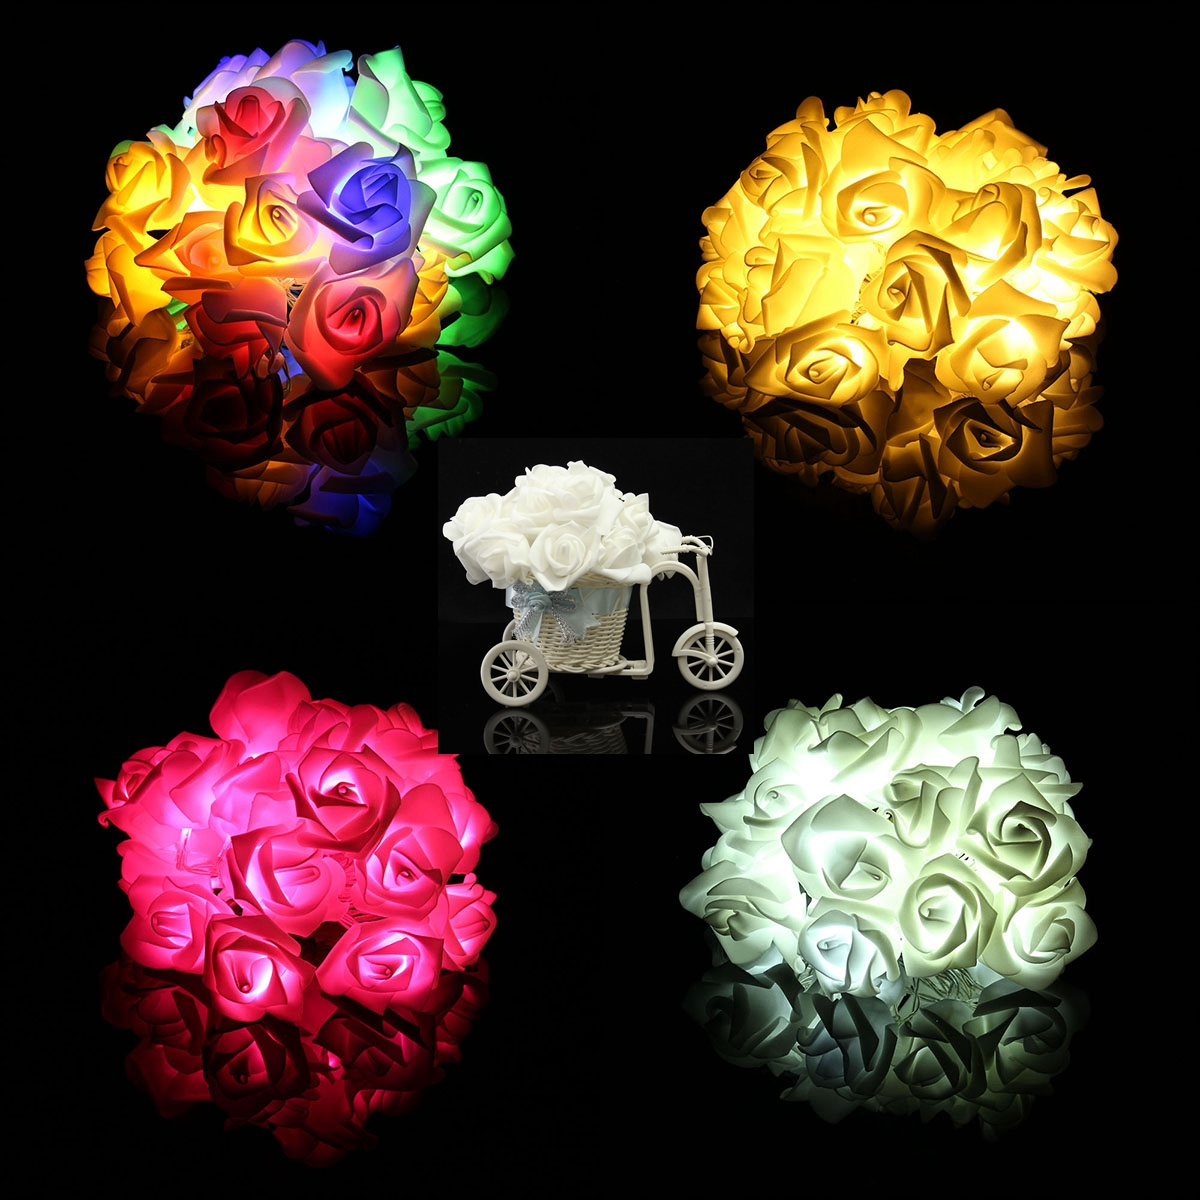 Led Rose String Lights : 20 LED Rose Flower String Lights Fairy Wedding Party Christmas Decoration Alex NLD